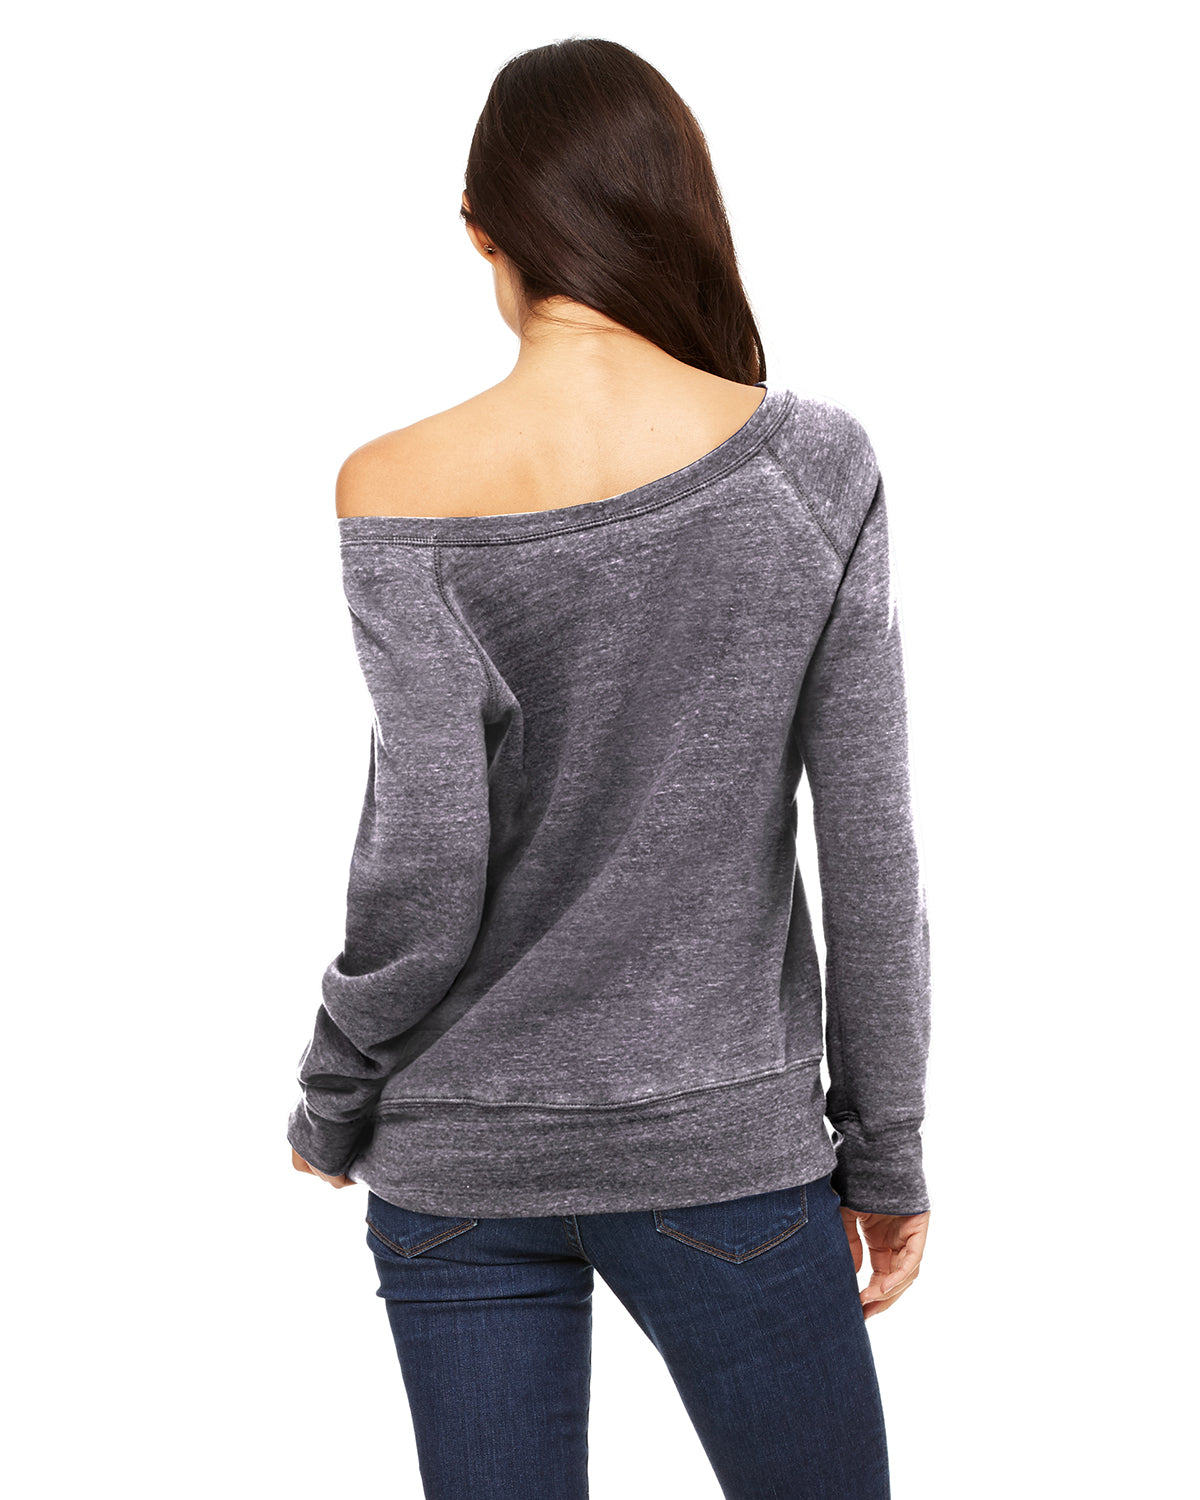 Nap Queen Off Shoulder Sweatshirt Acid Wash